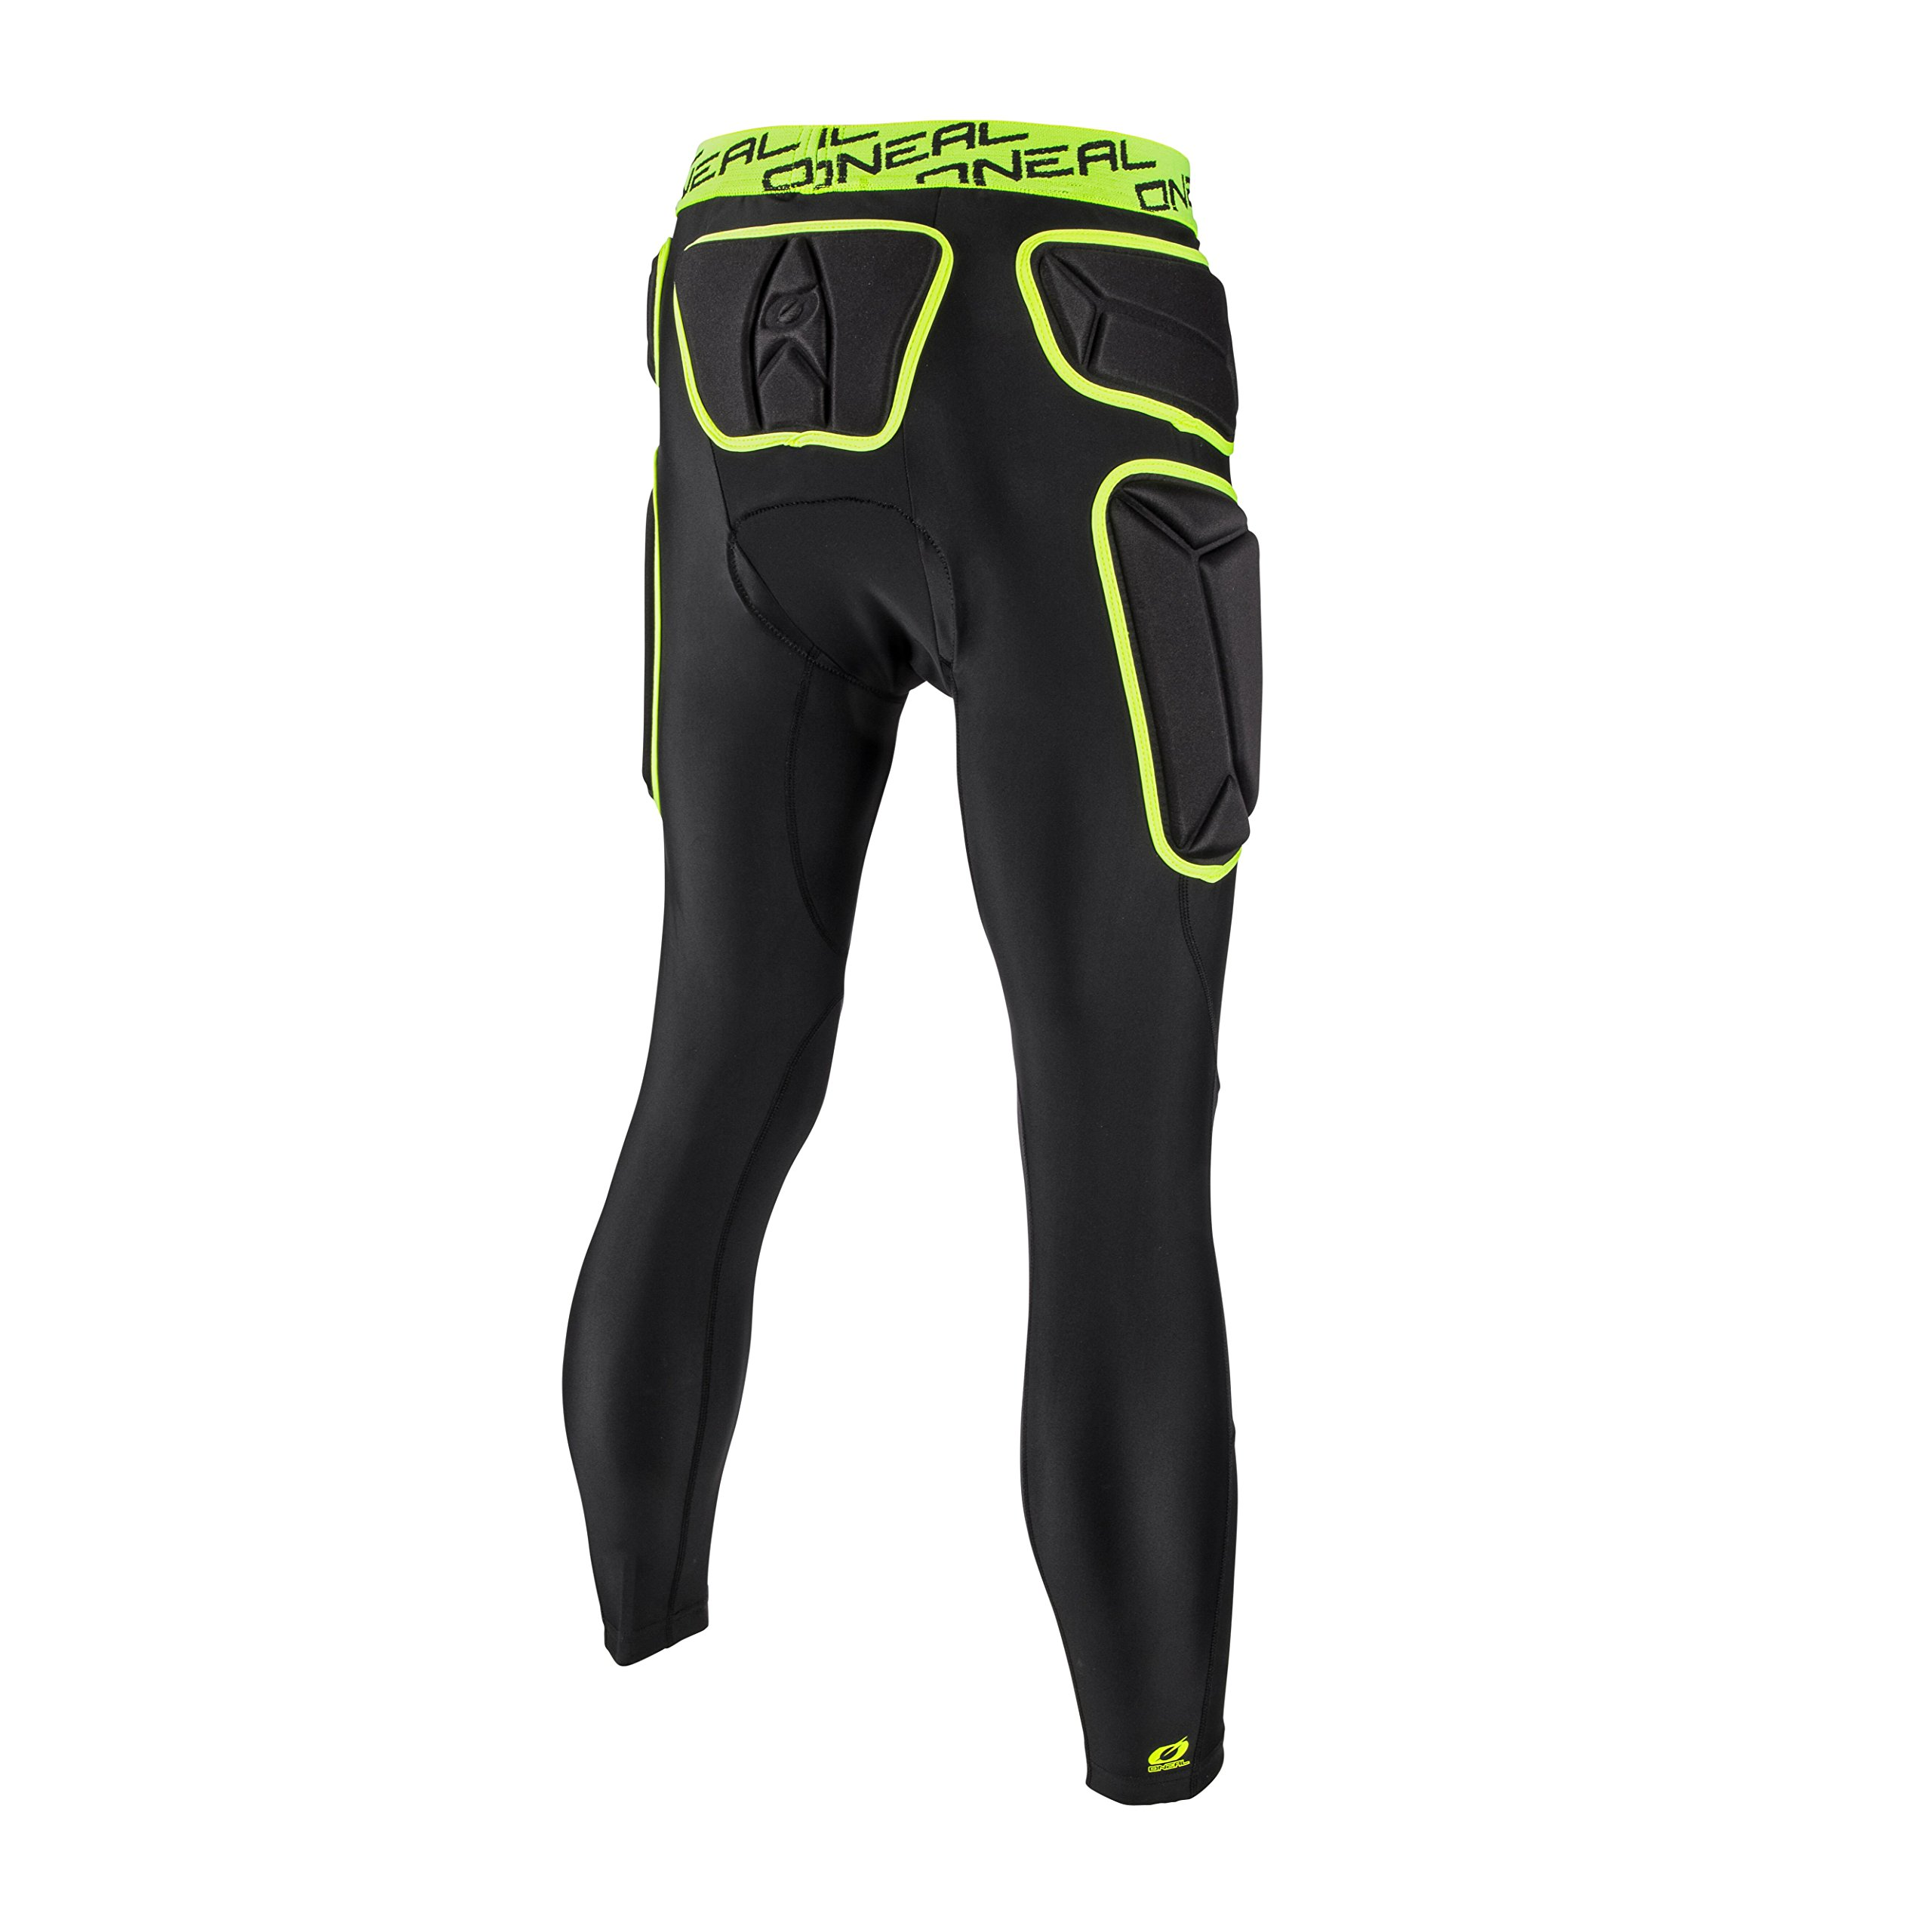 O'Neal Unisex-Adult's Trail Pro Pant (Lime/Black, Large) by O'Neal (Image #2)